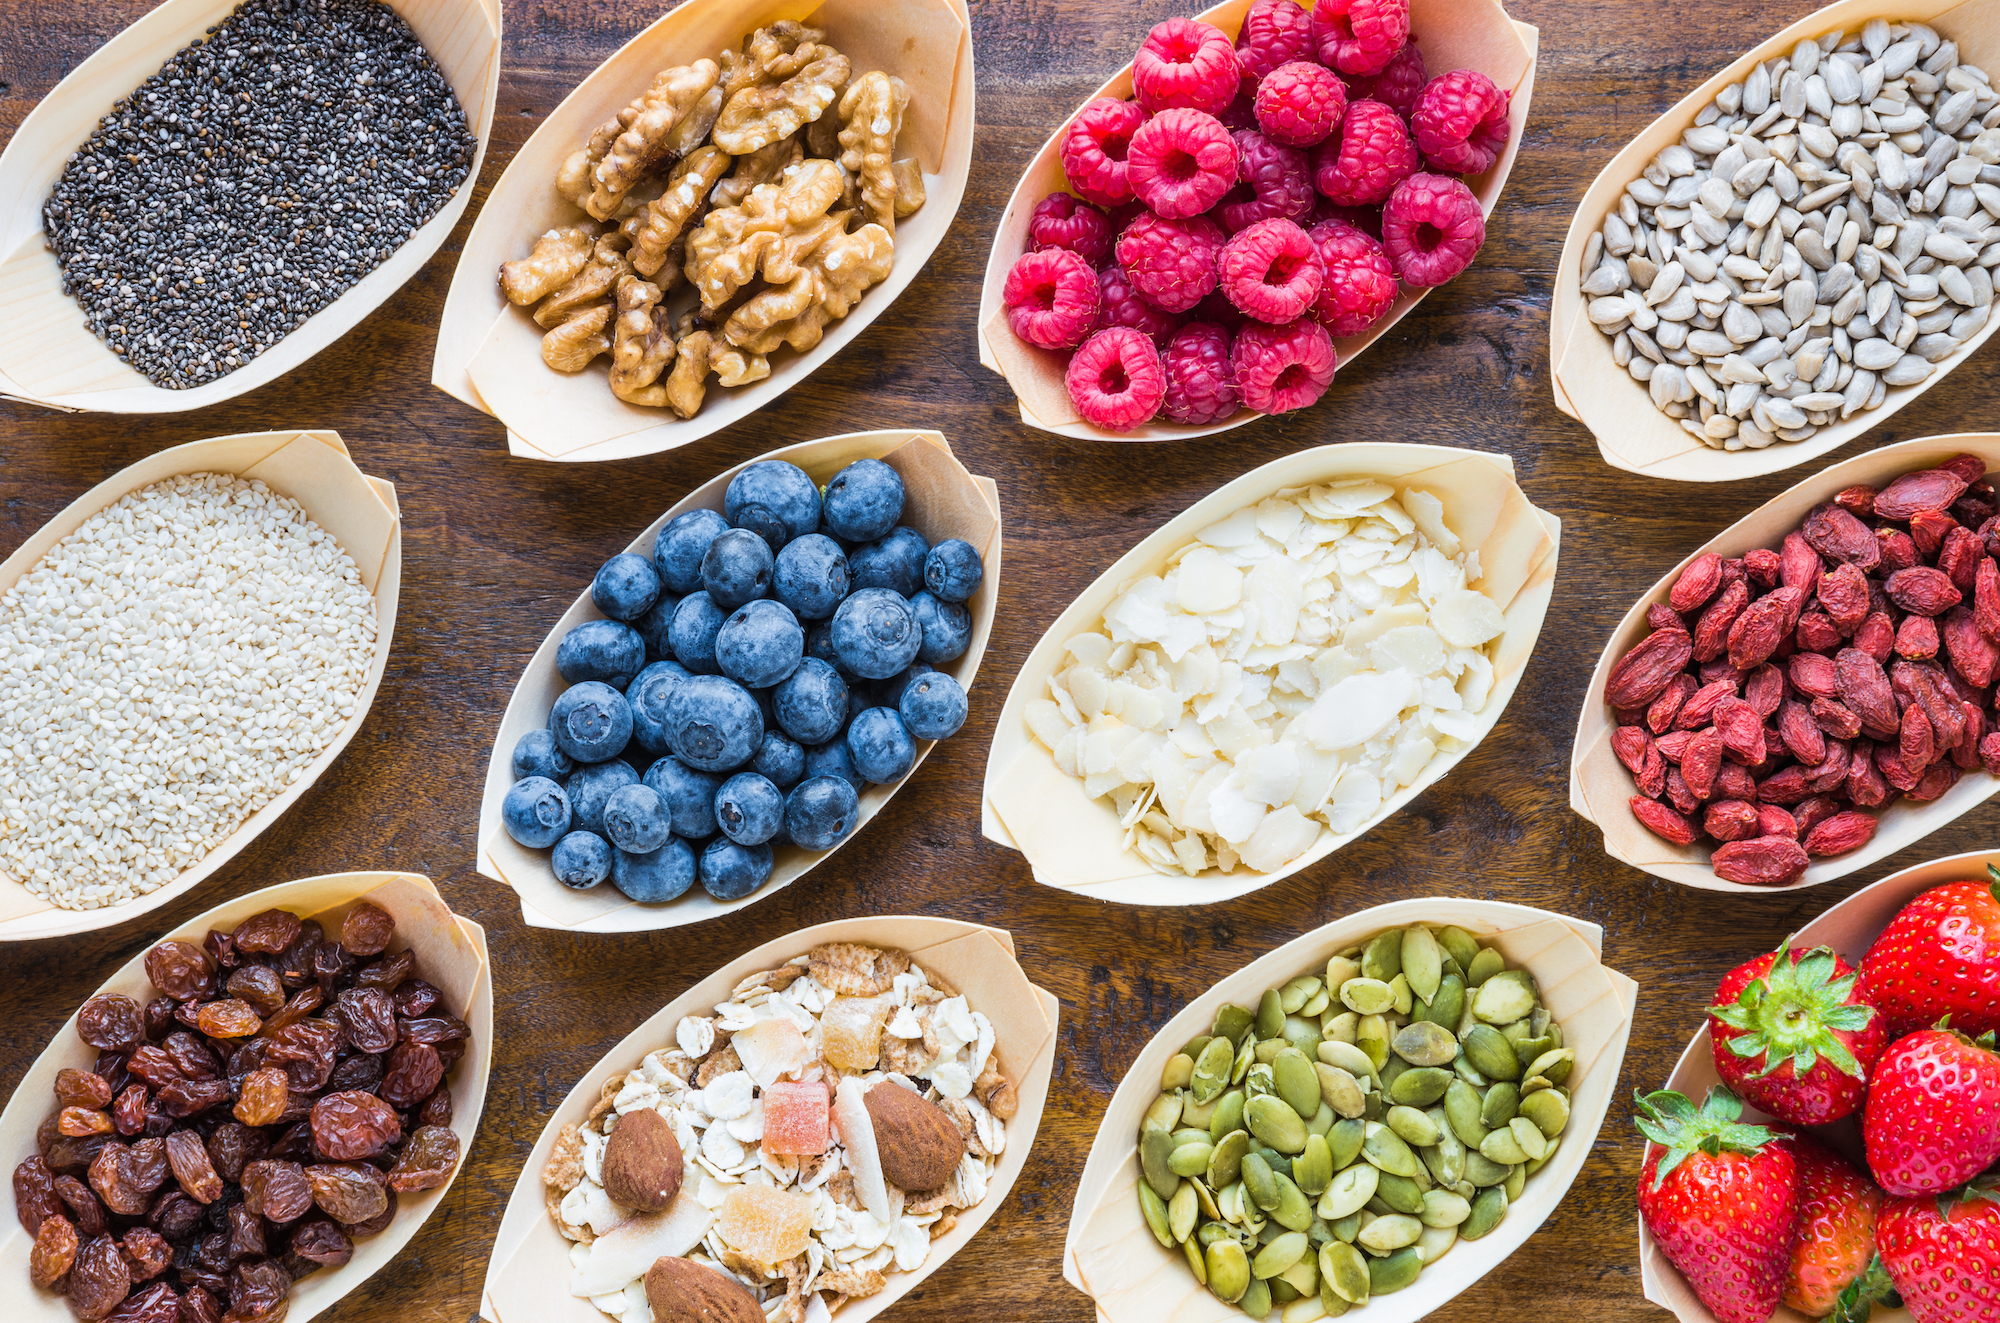 Myths about health foods you always thought were true